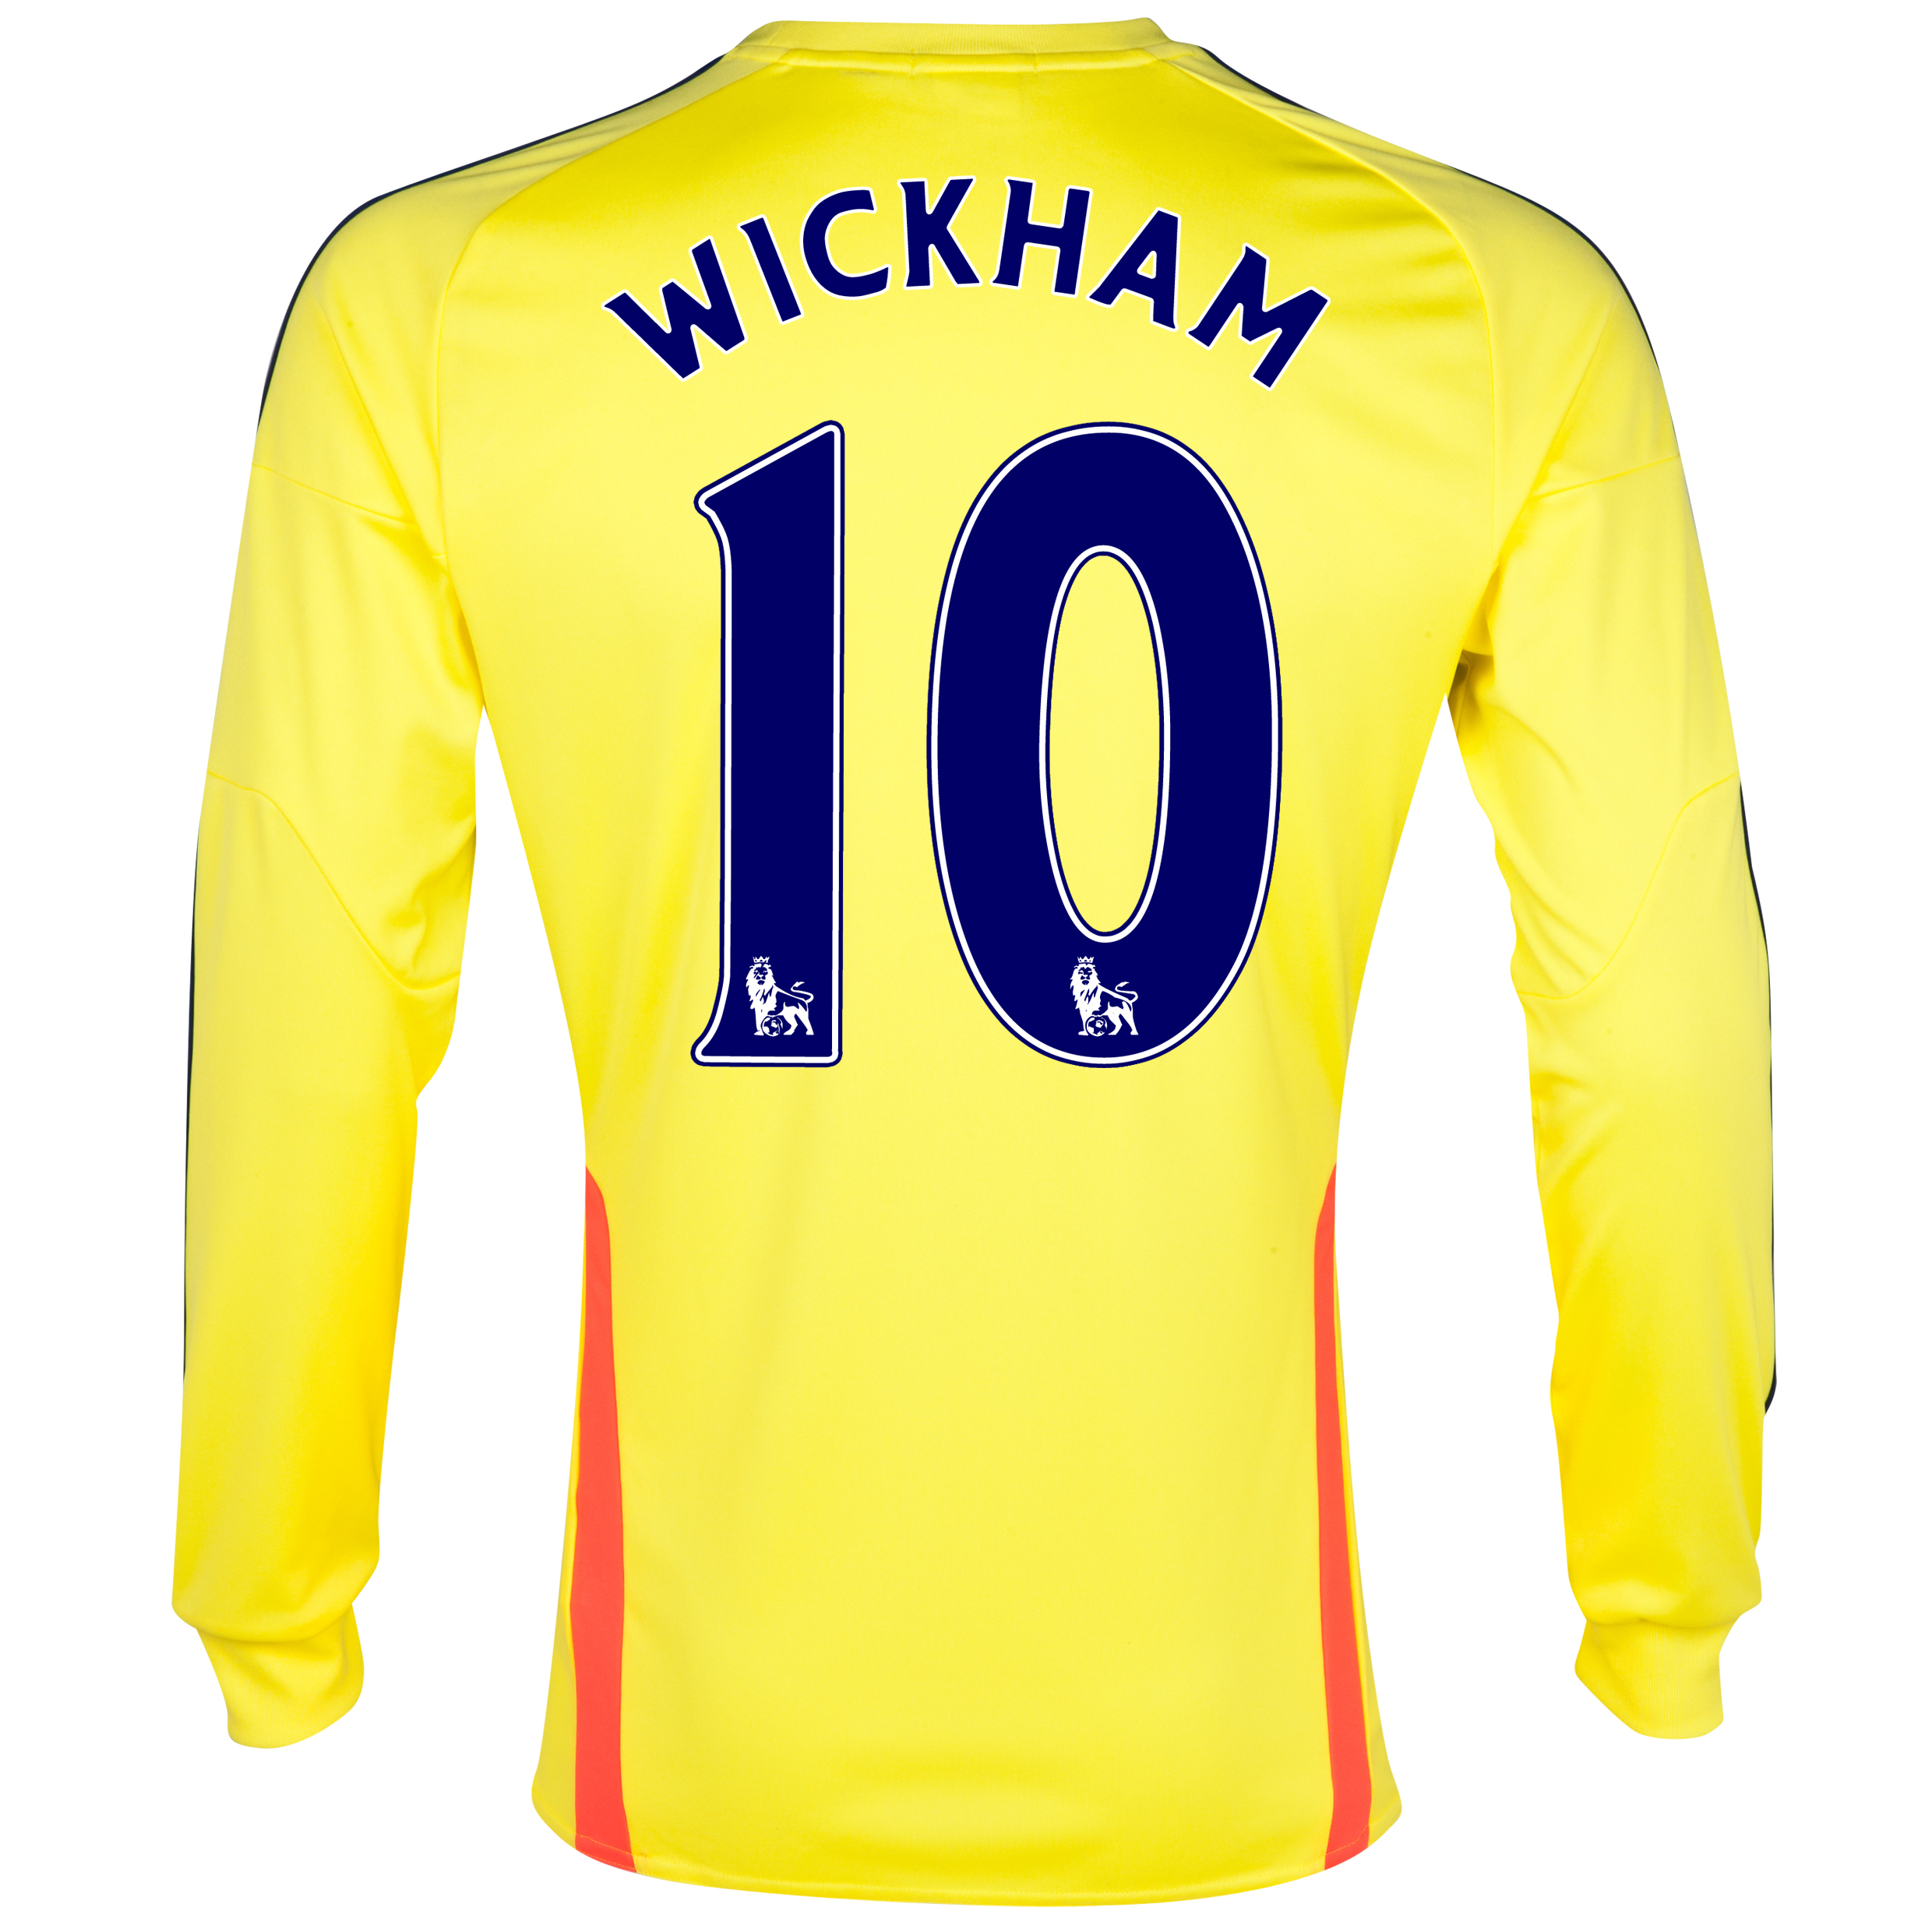 Sunderland Away Shirt 2013/14 - Long Sleeved with Wickham 10 printing